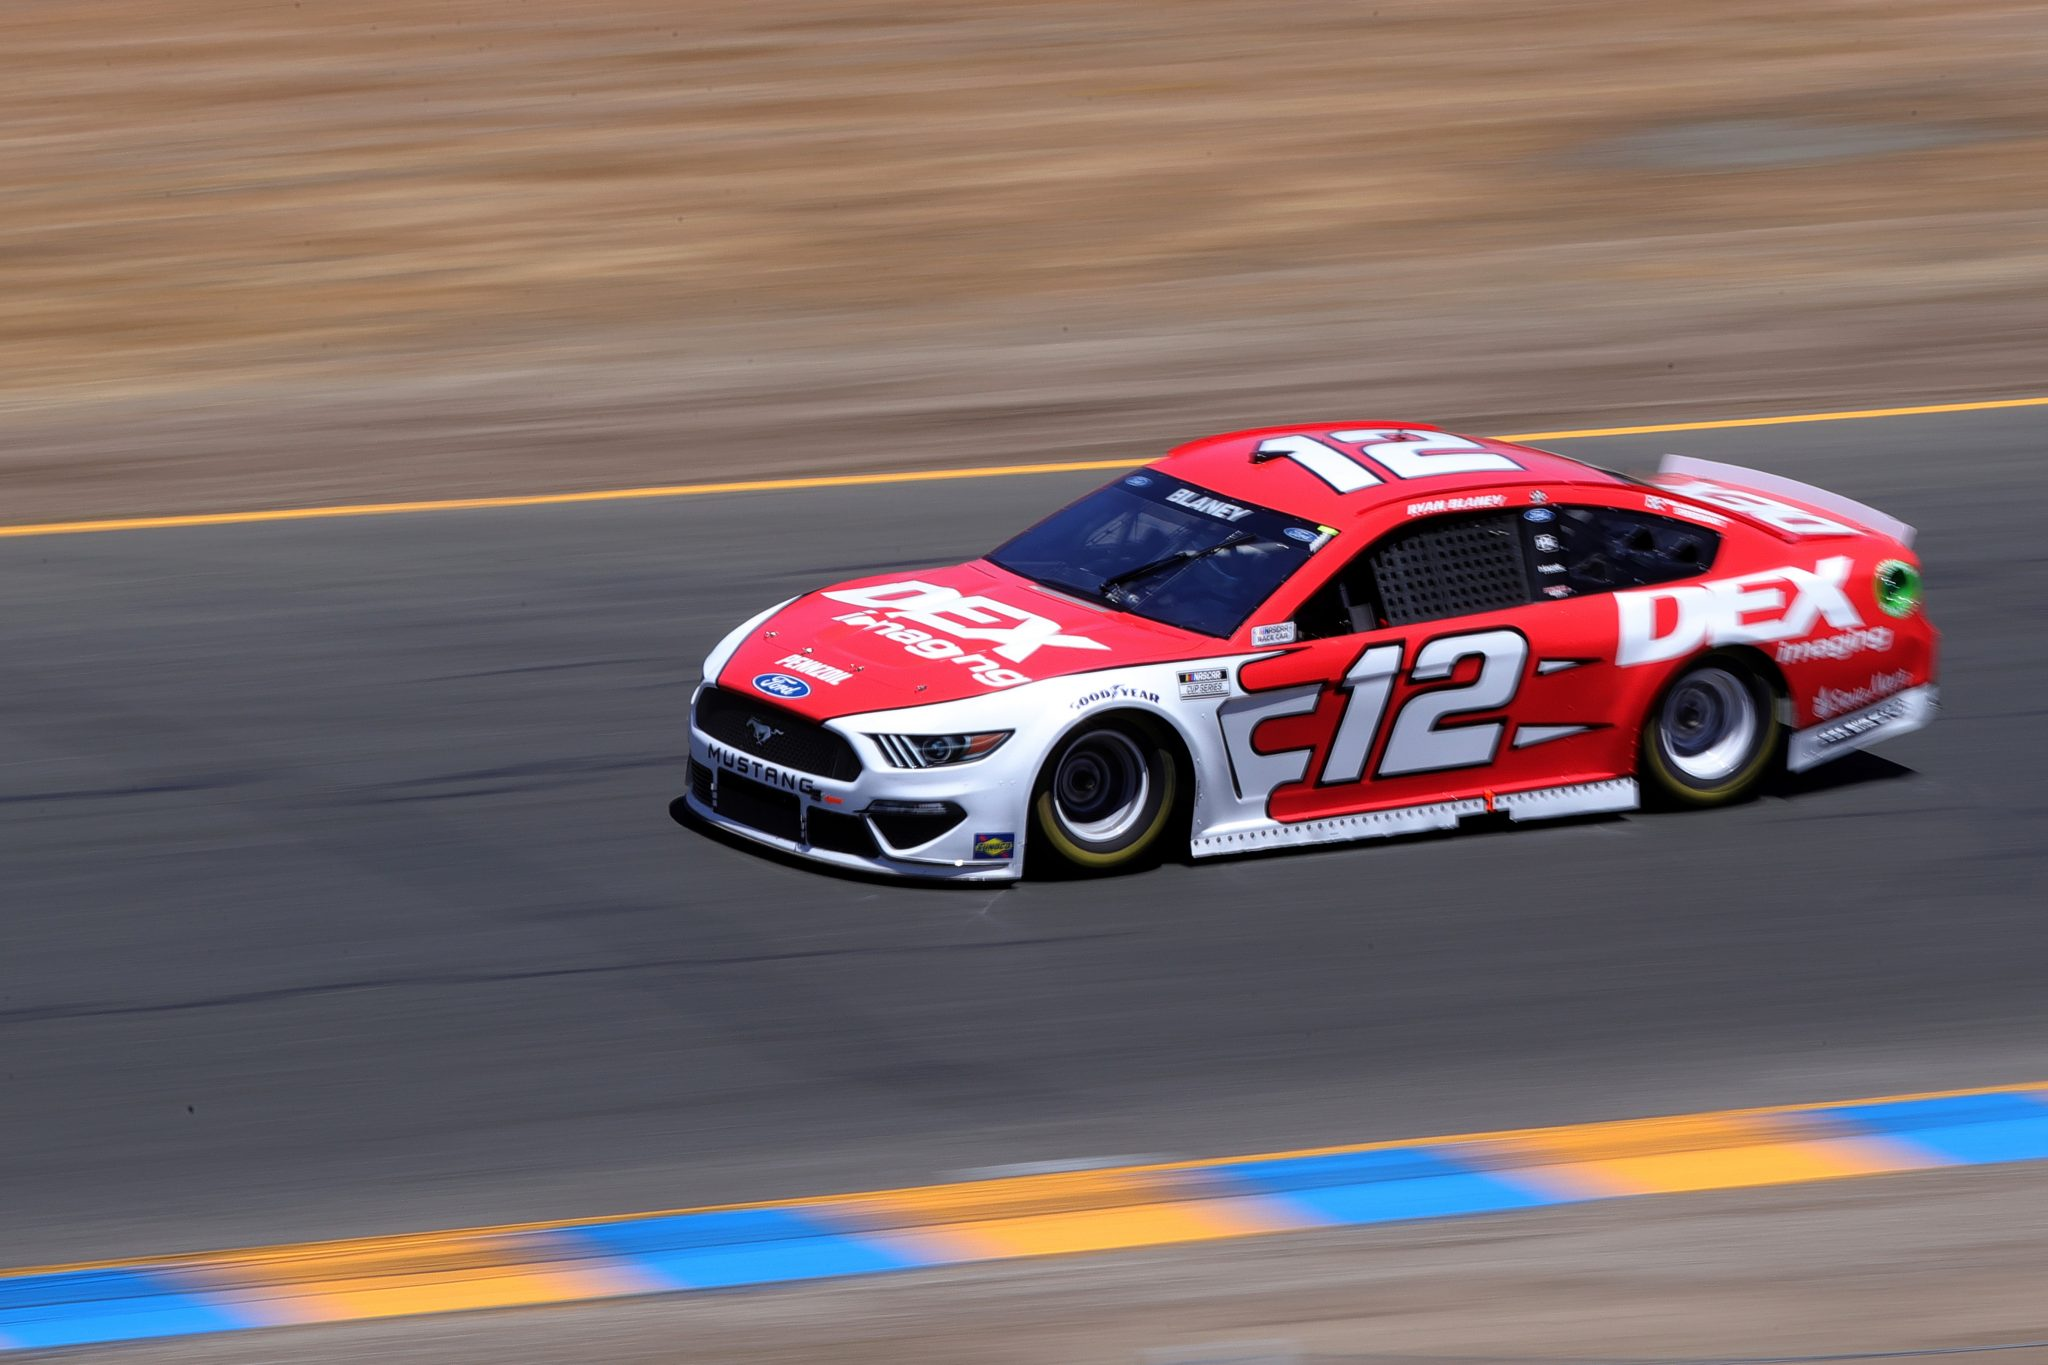 SONOMA, CALIFORNIA - JUNE 06: Ryan Blaney, driver of the #12 DEX Imaging Ford, drives during the NASCAR Cup Series Toyota/Save Mart 350 at Sonoma Raceway on June 06, 2021 in Sonoma, California. (Photo by Carmen Mandato/Getty Images) | Getty Images